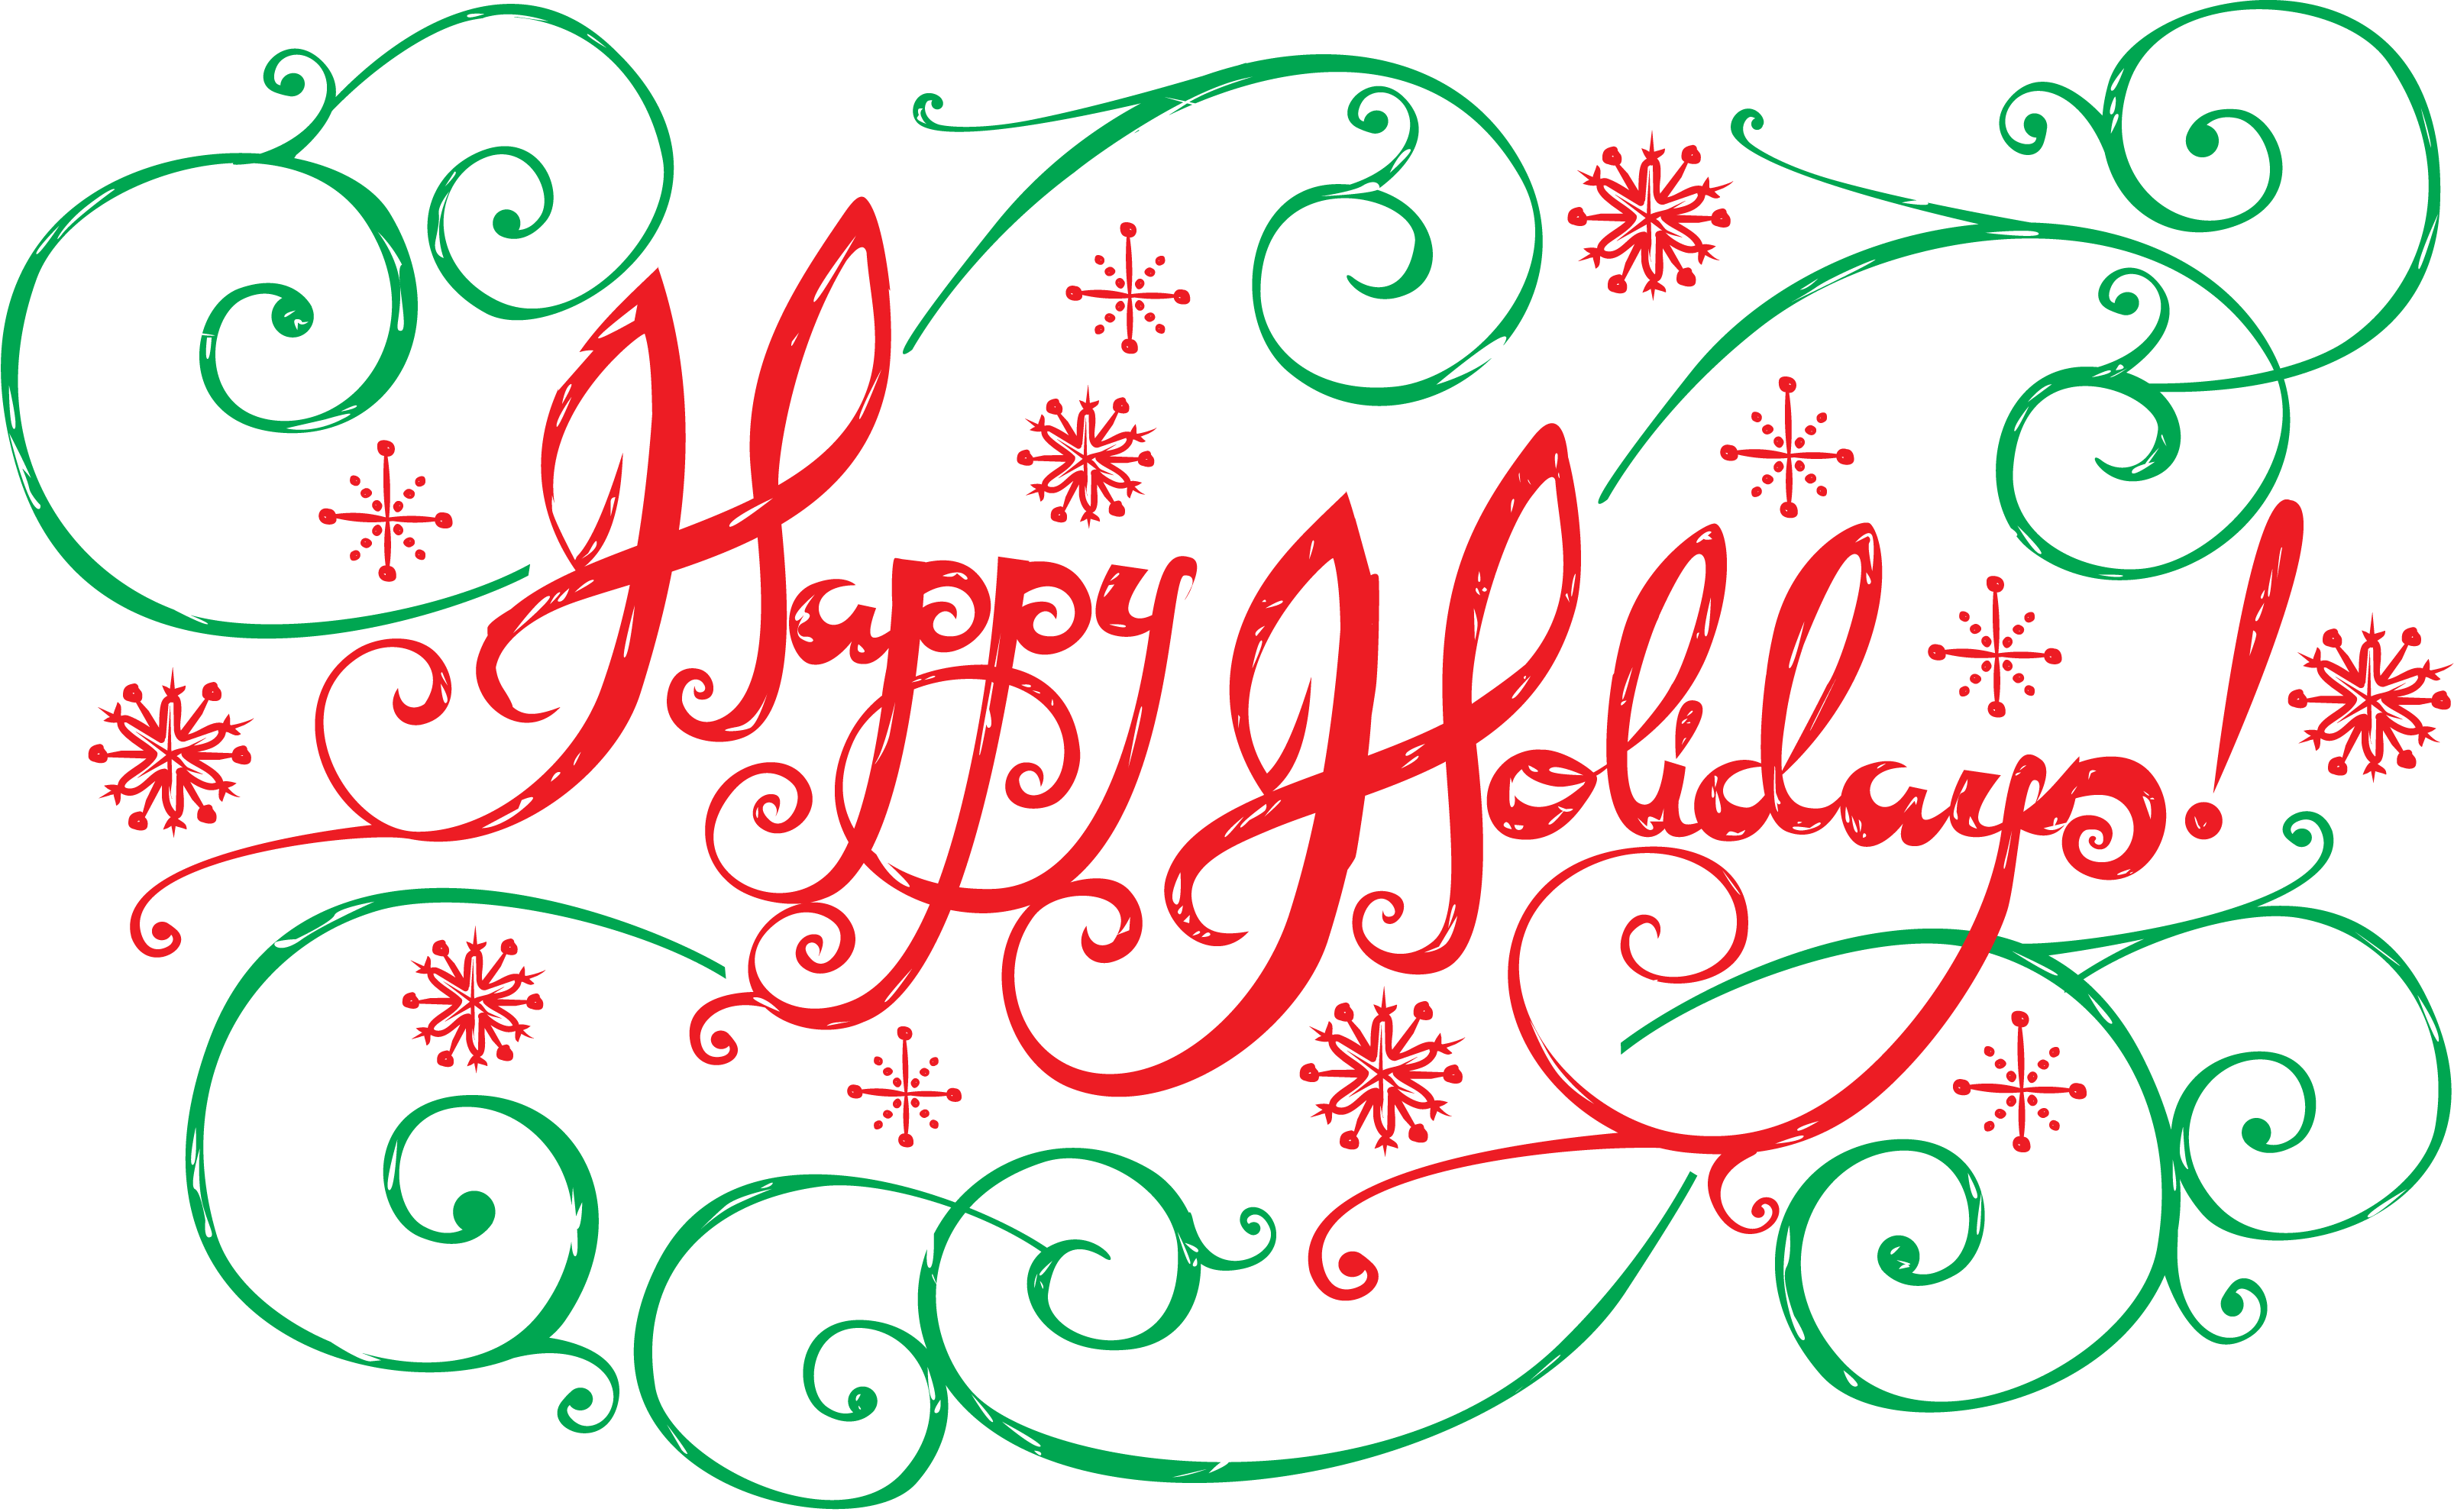 Best Free Happy Holidays Png Image 34707 Free Icons and PNG